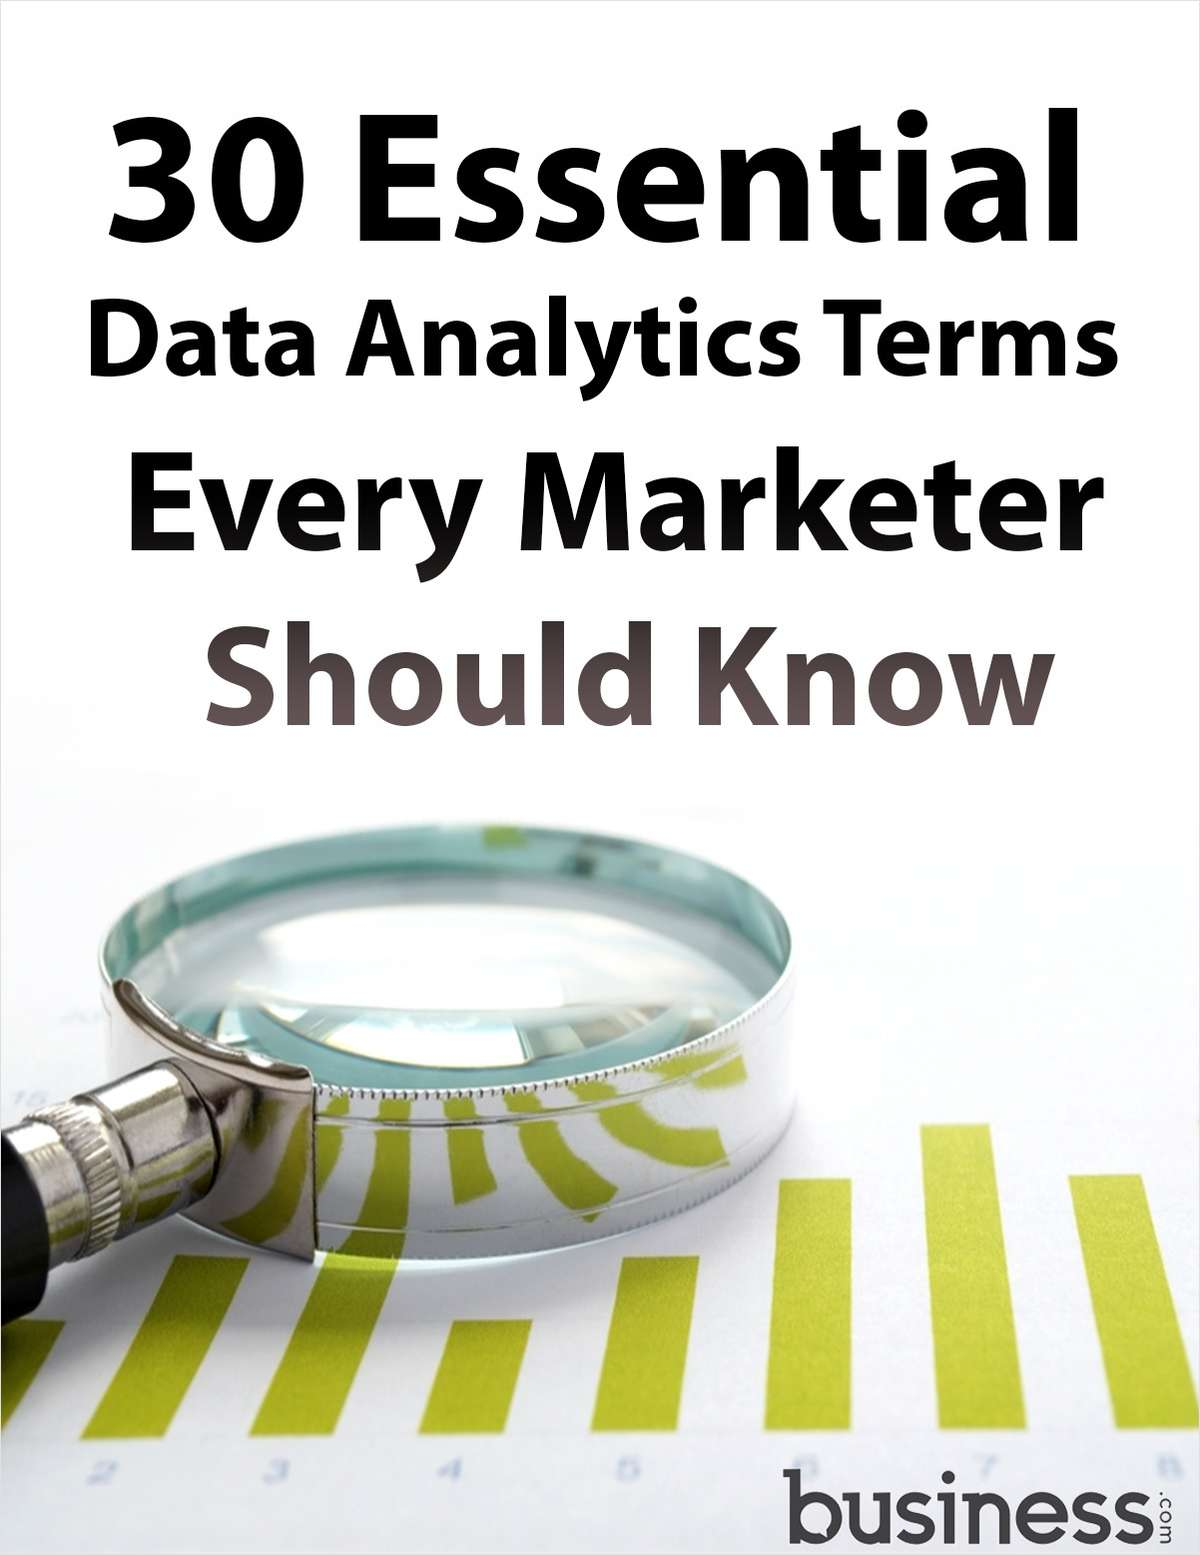 30 Essential Data Analytics Terms Every Marketer Should Know